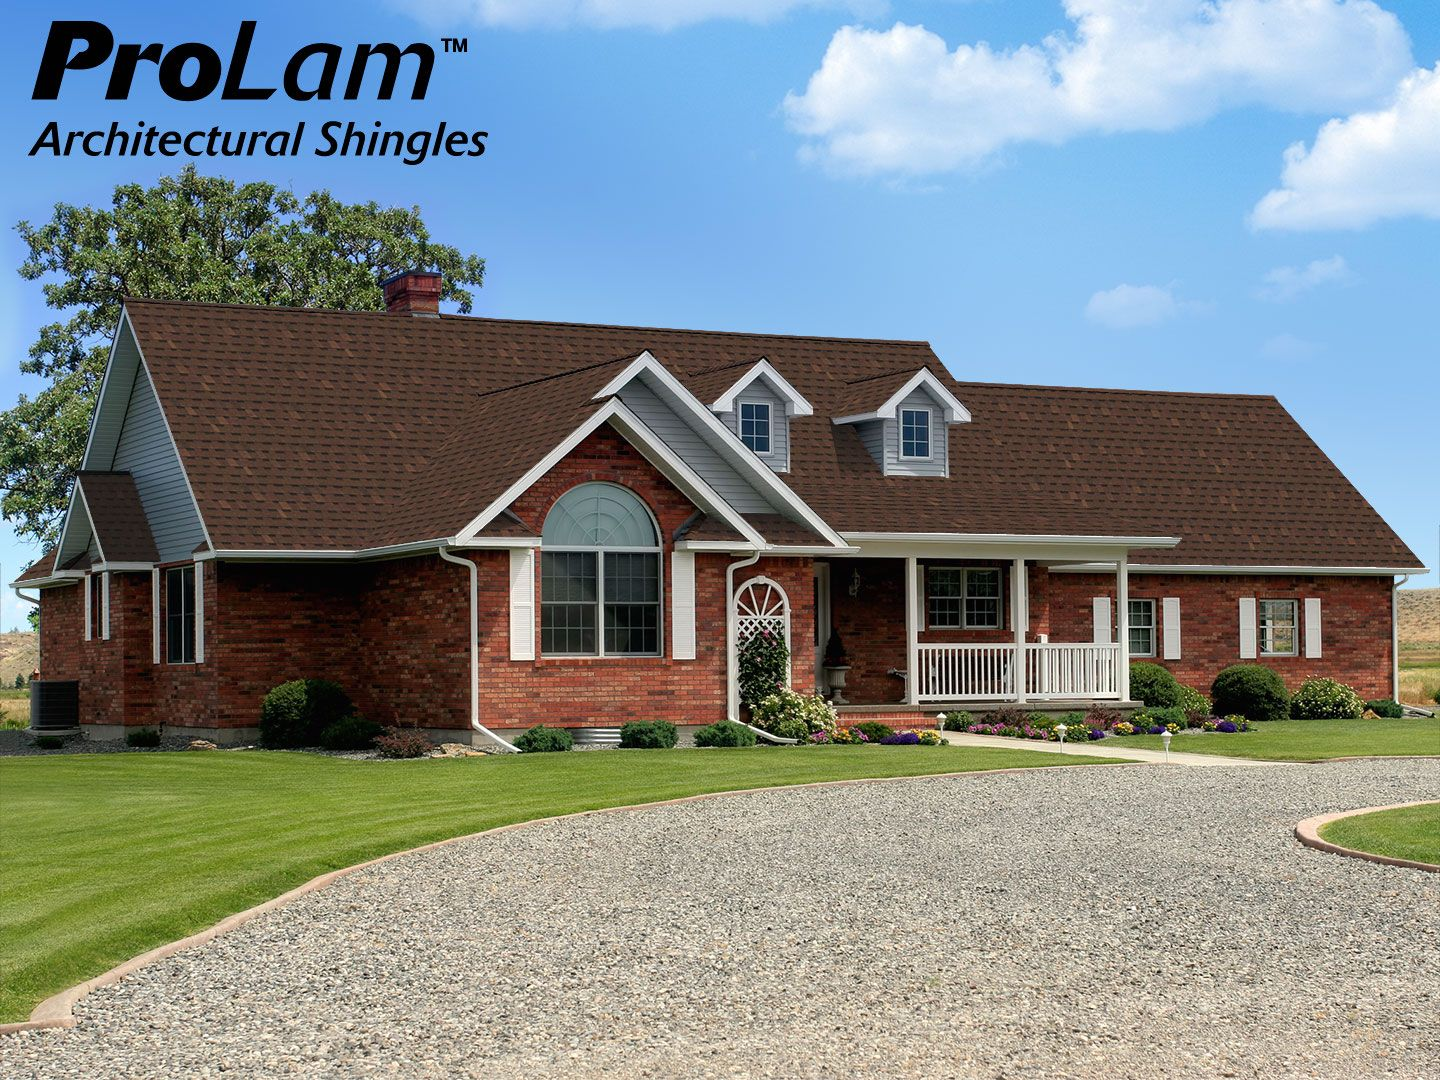 Quality roofing job begins before the shingles go on home remodeling - Prolam Shingles In Burnt Sienna Deliver The Designer Look Of An Architectural Shingle At A